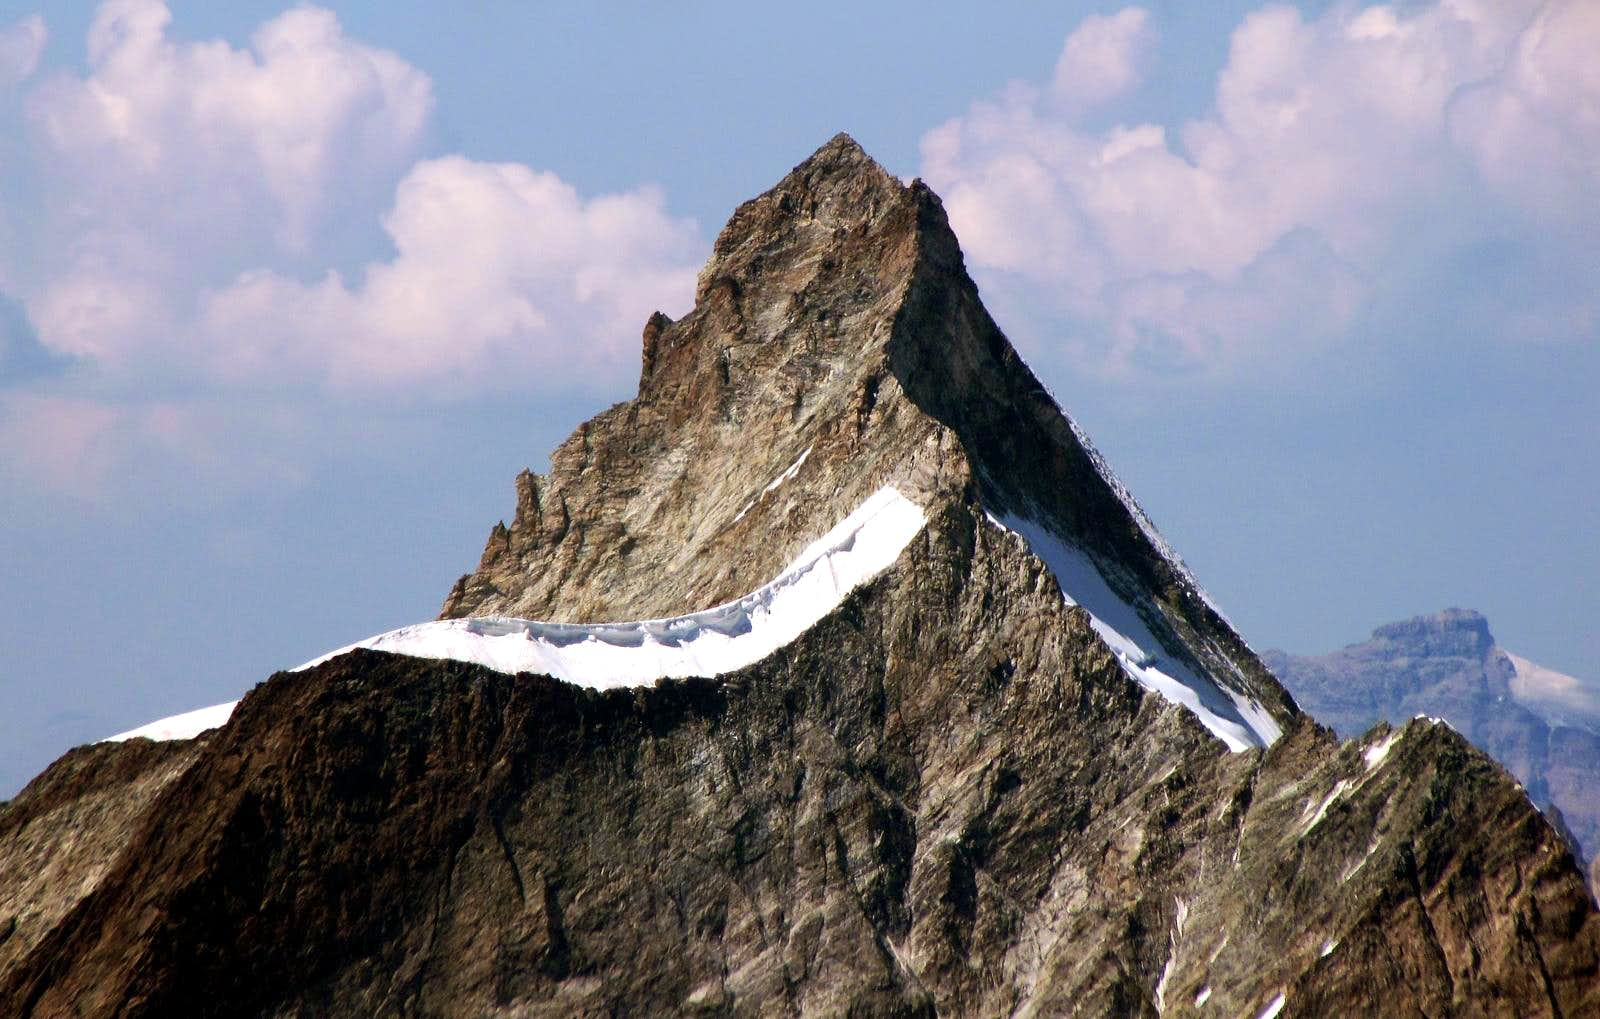 <font color=blue>▲</font>The famous 4000m in the Aosta Valley and the normal route or no (Valpelline Valley)